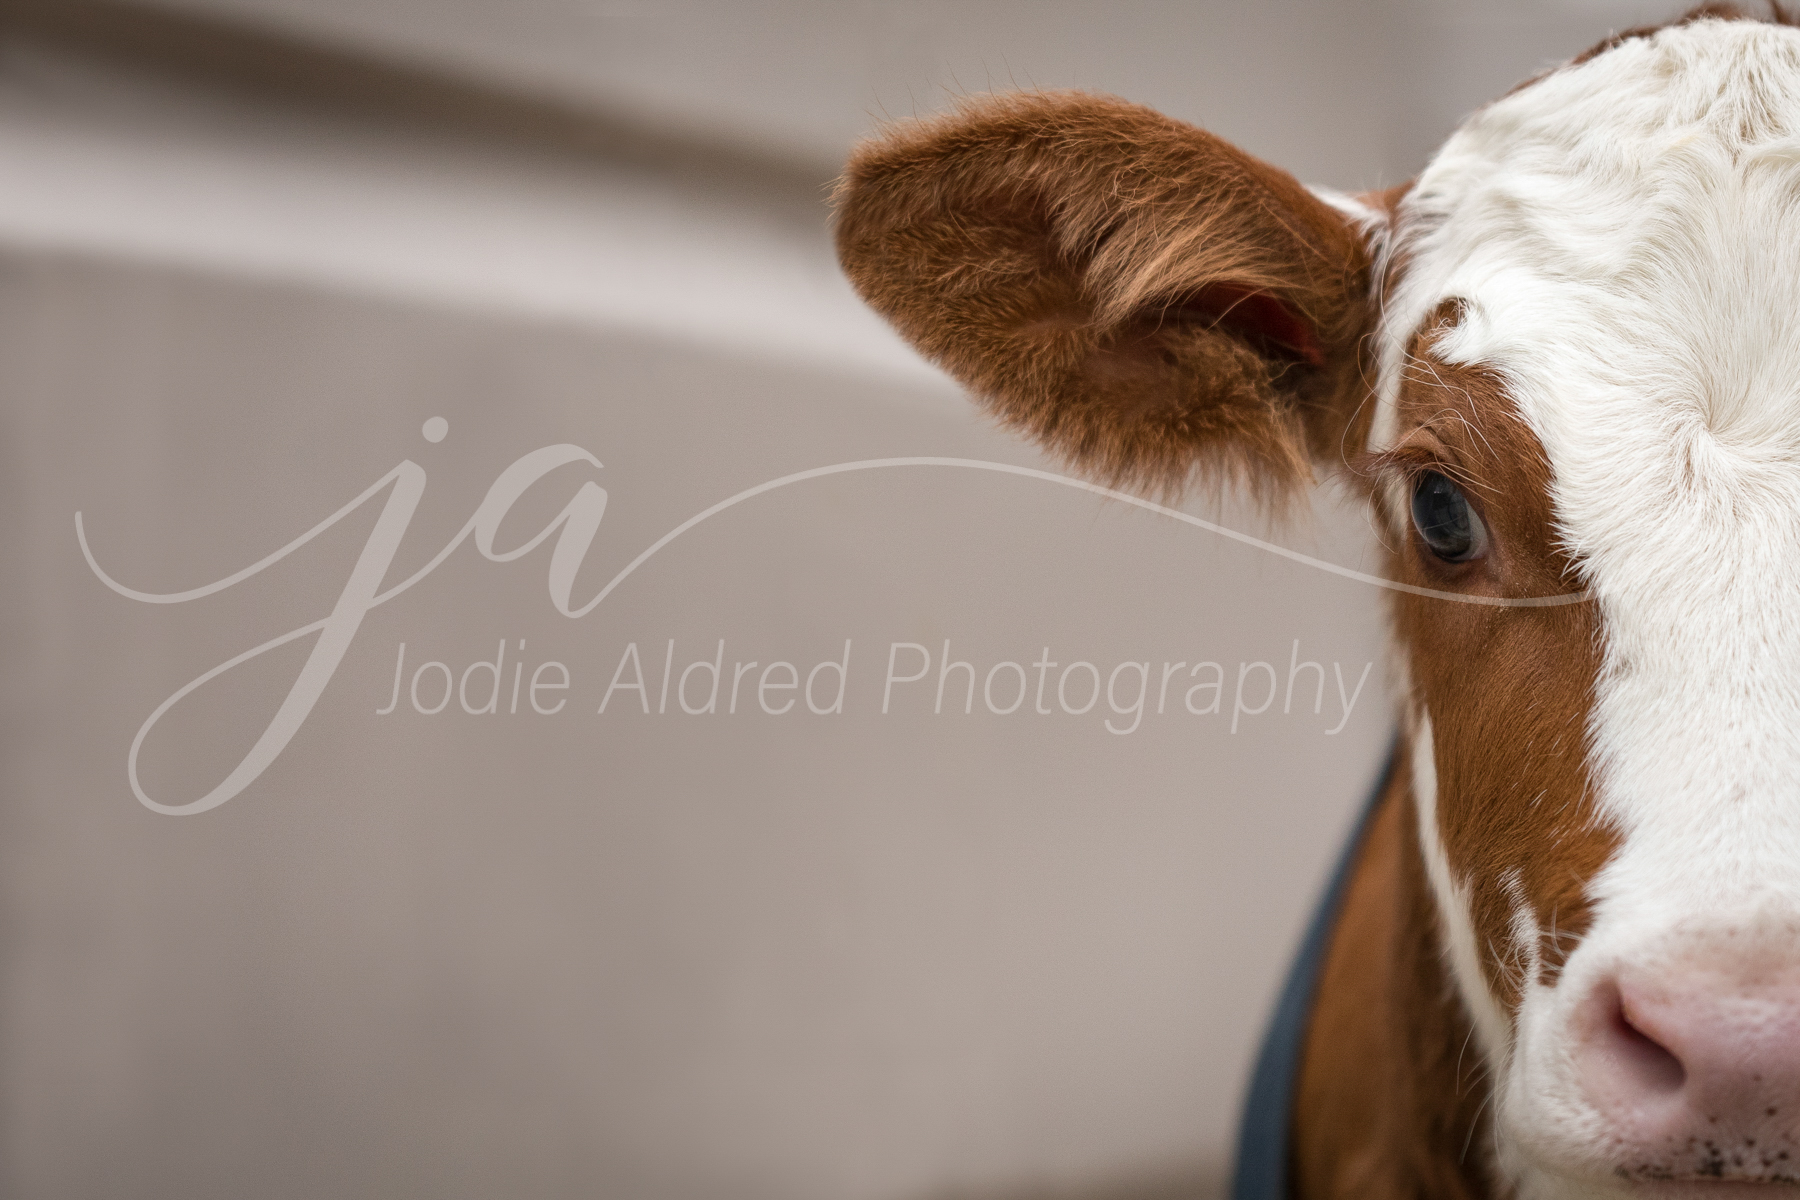 Jodie-Aldred-Photography-Ontario-Agriculture-Photographer-Farm-Outdoors-Nature-Middlesex-Elgin-Chathma-Kent-Huron-Photographer-calf-dairy-red-white-face-young.jpg